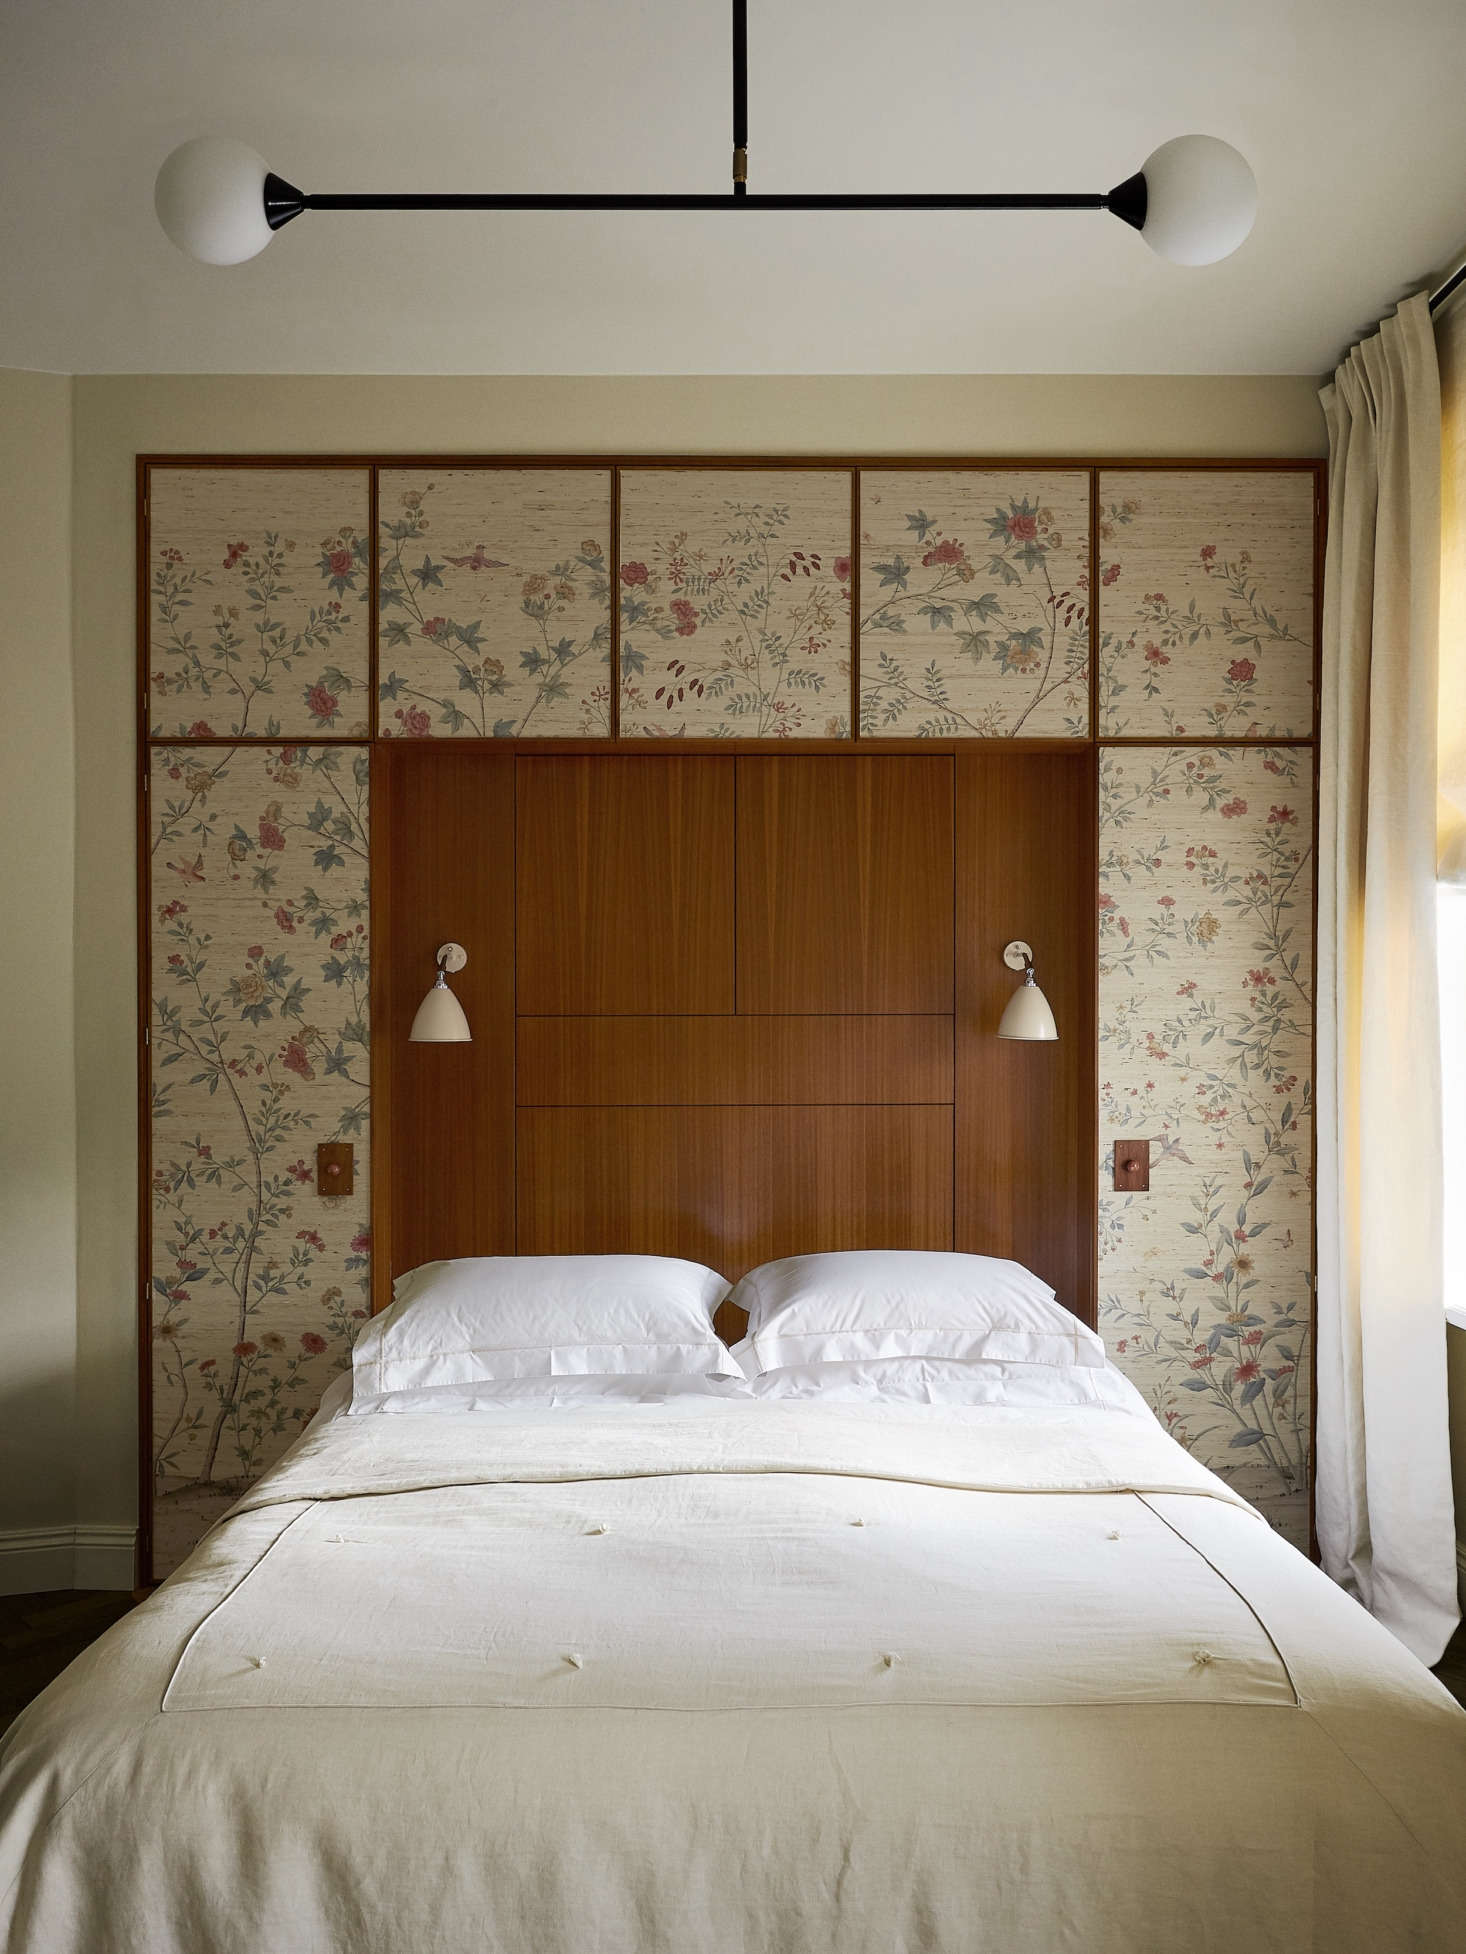 A quirk of the apartment is that nearly every room has a diagonal wall. In the bedroom, Chrapka straightened the room with the help of a built-in headboard and cabinet, covered with William Morris wallpaper. The Bestlite sconces are by Gubi.